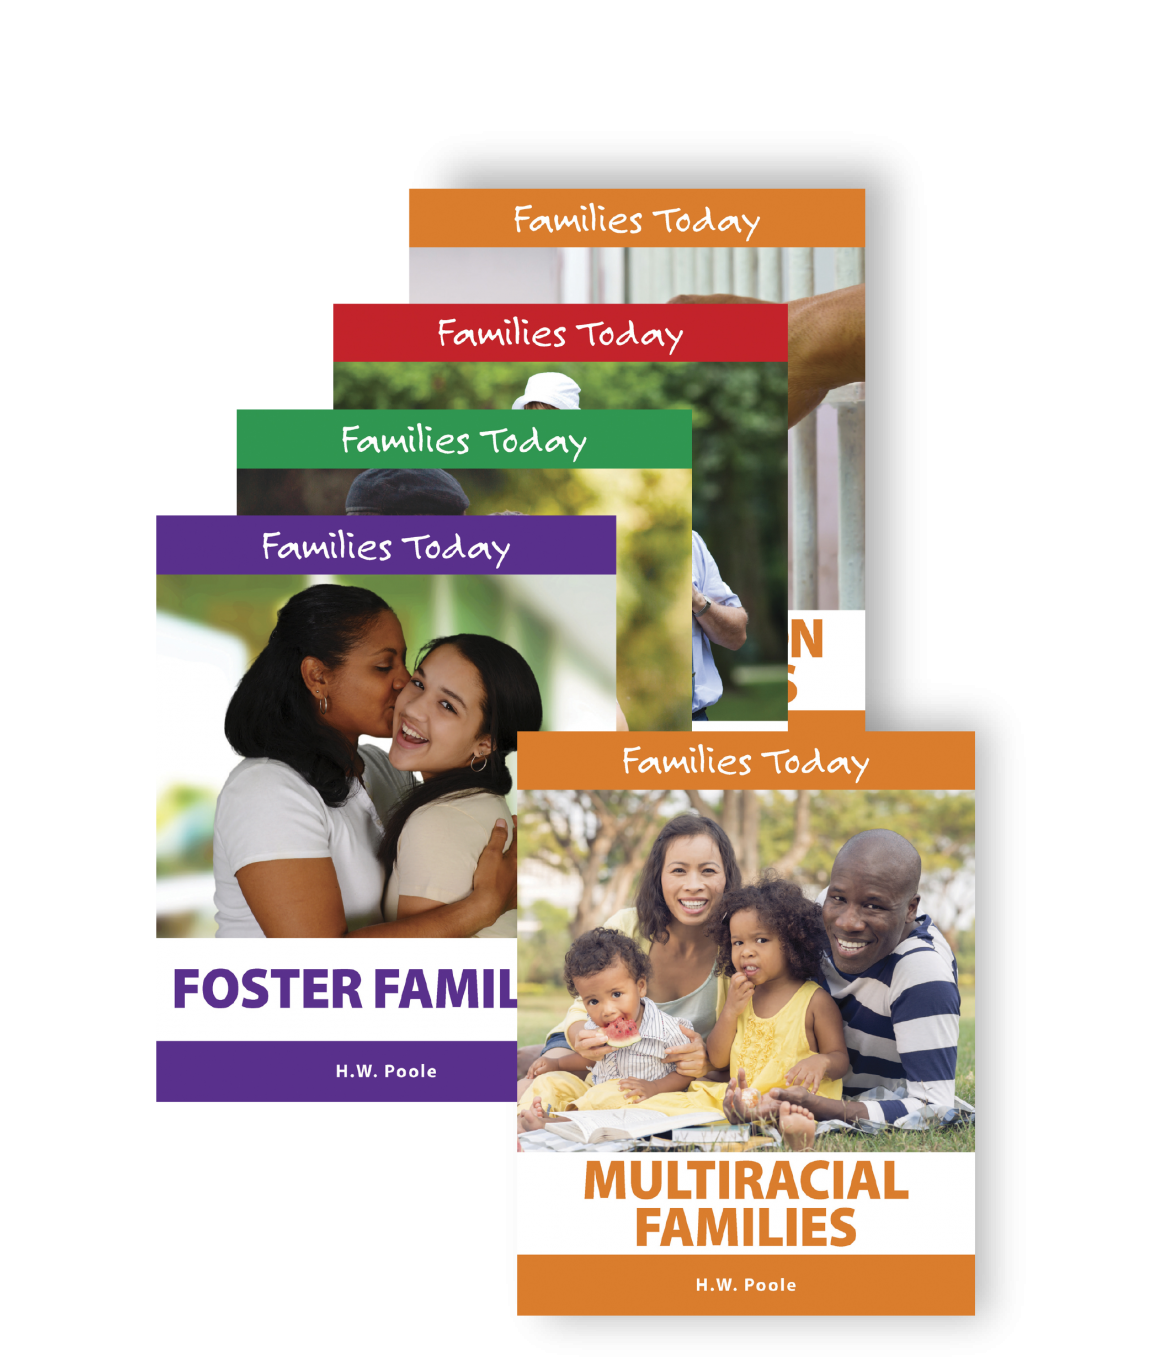 Families-Today-Series-11-Titles-01.png